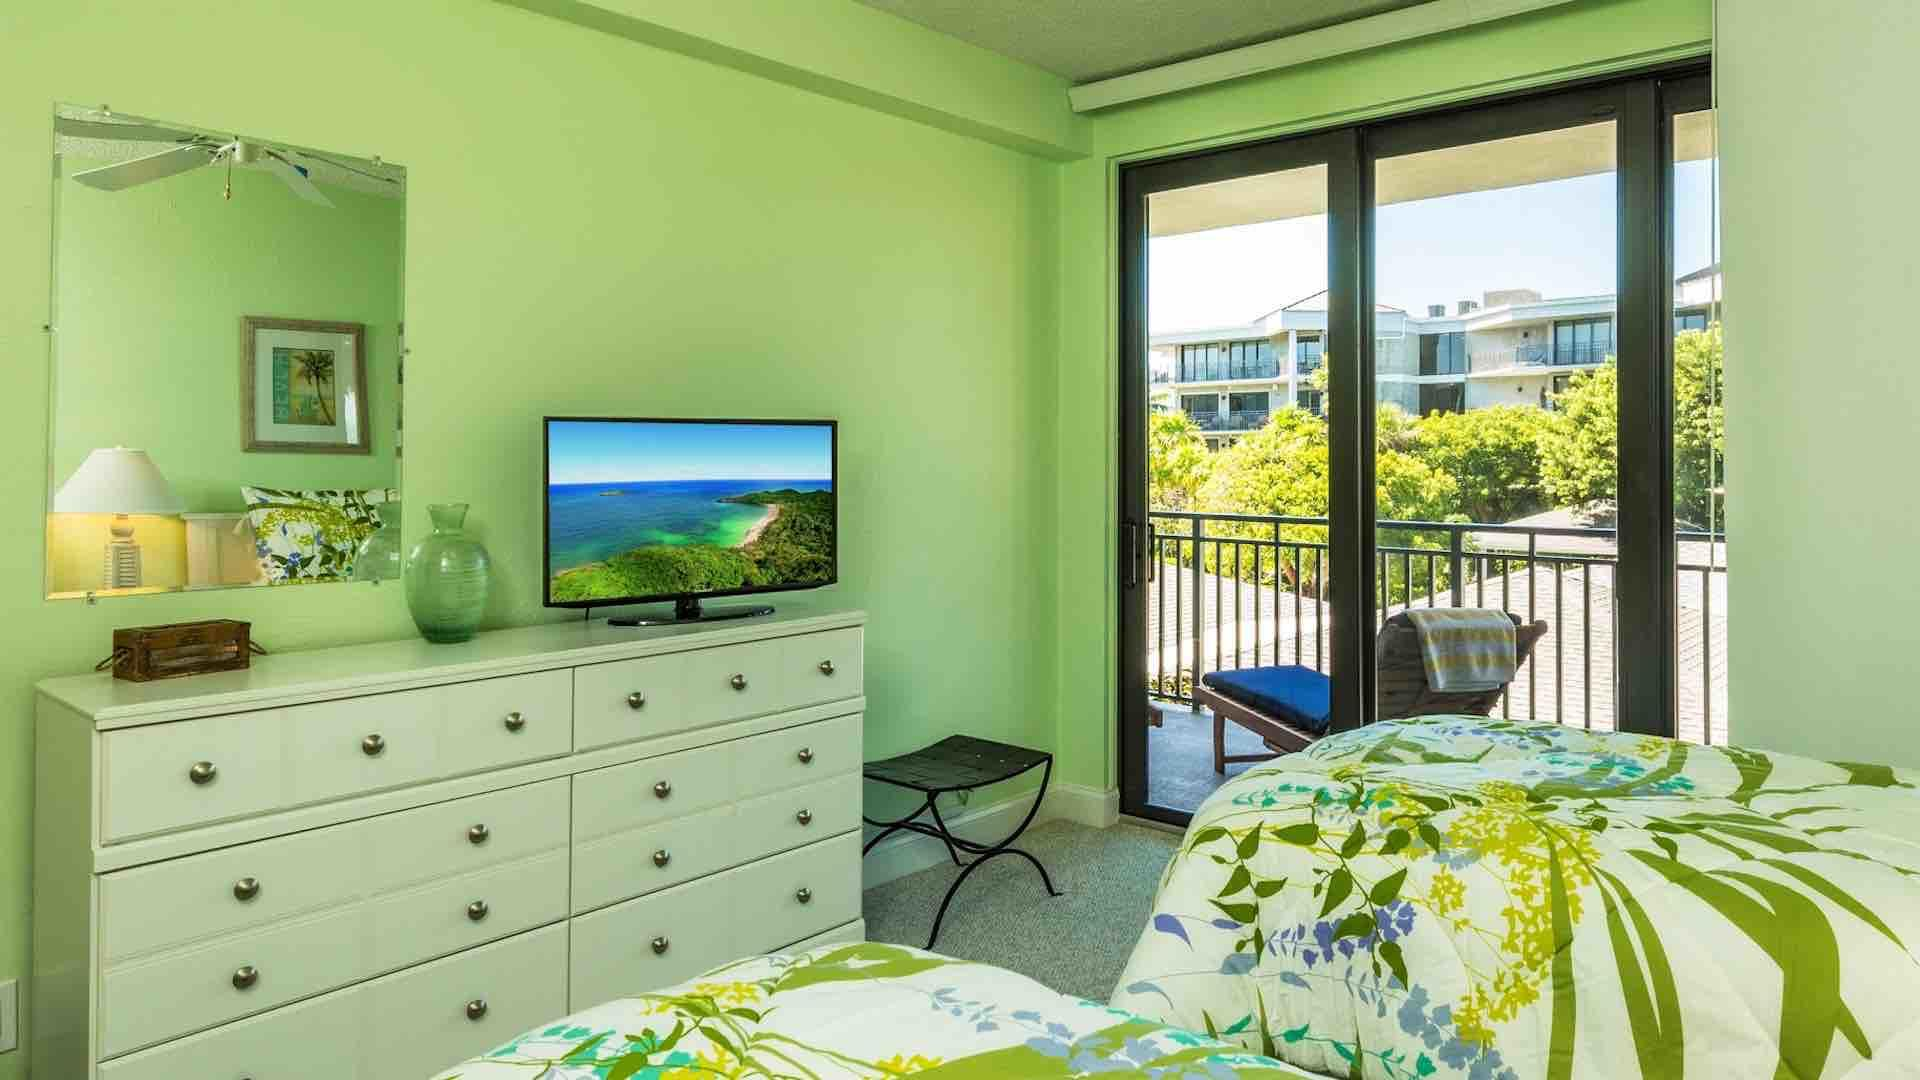 The elegantly furnished second bedroom has a flat screen TV and balcony access..